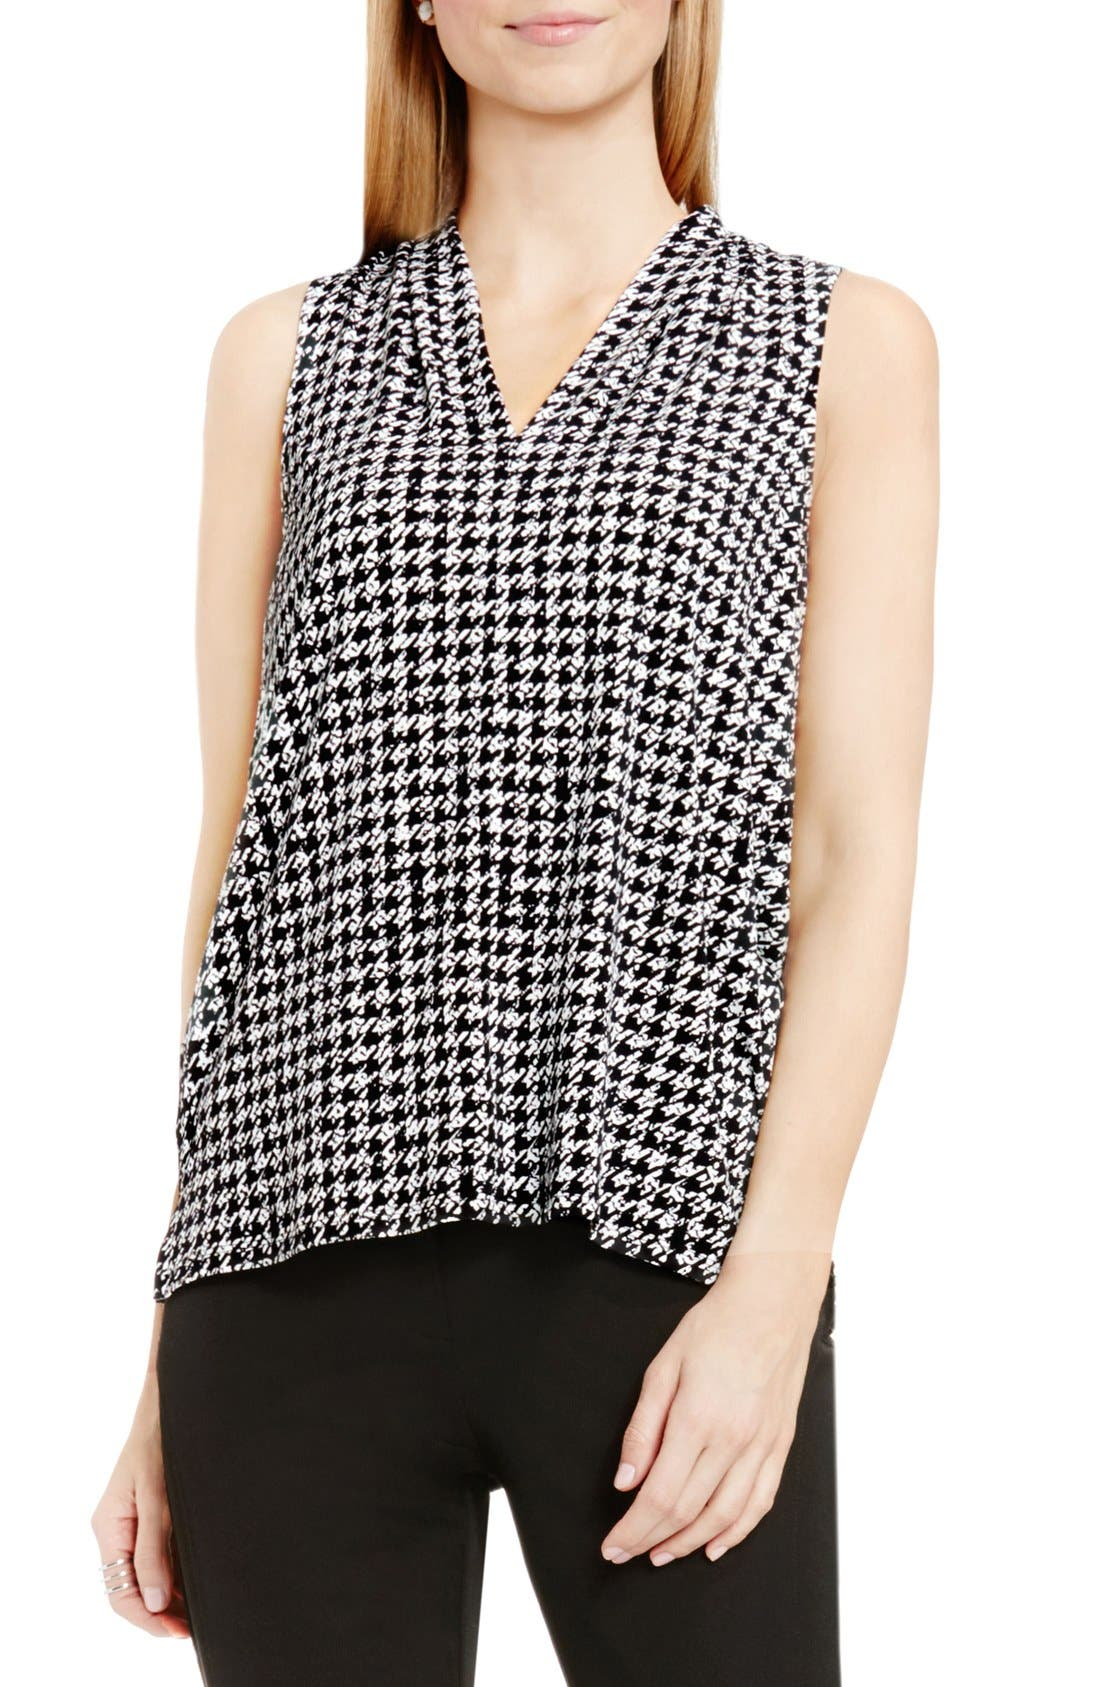 Alternate Image 1 Selected - Vince Camuto Sleeveless V-Neck Top (Regular & Petite)